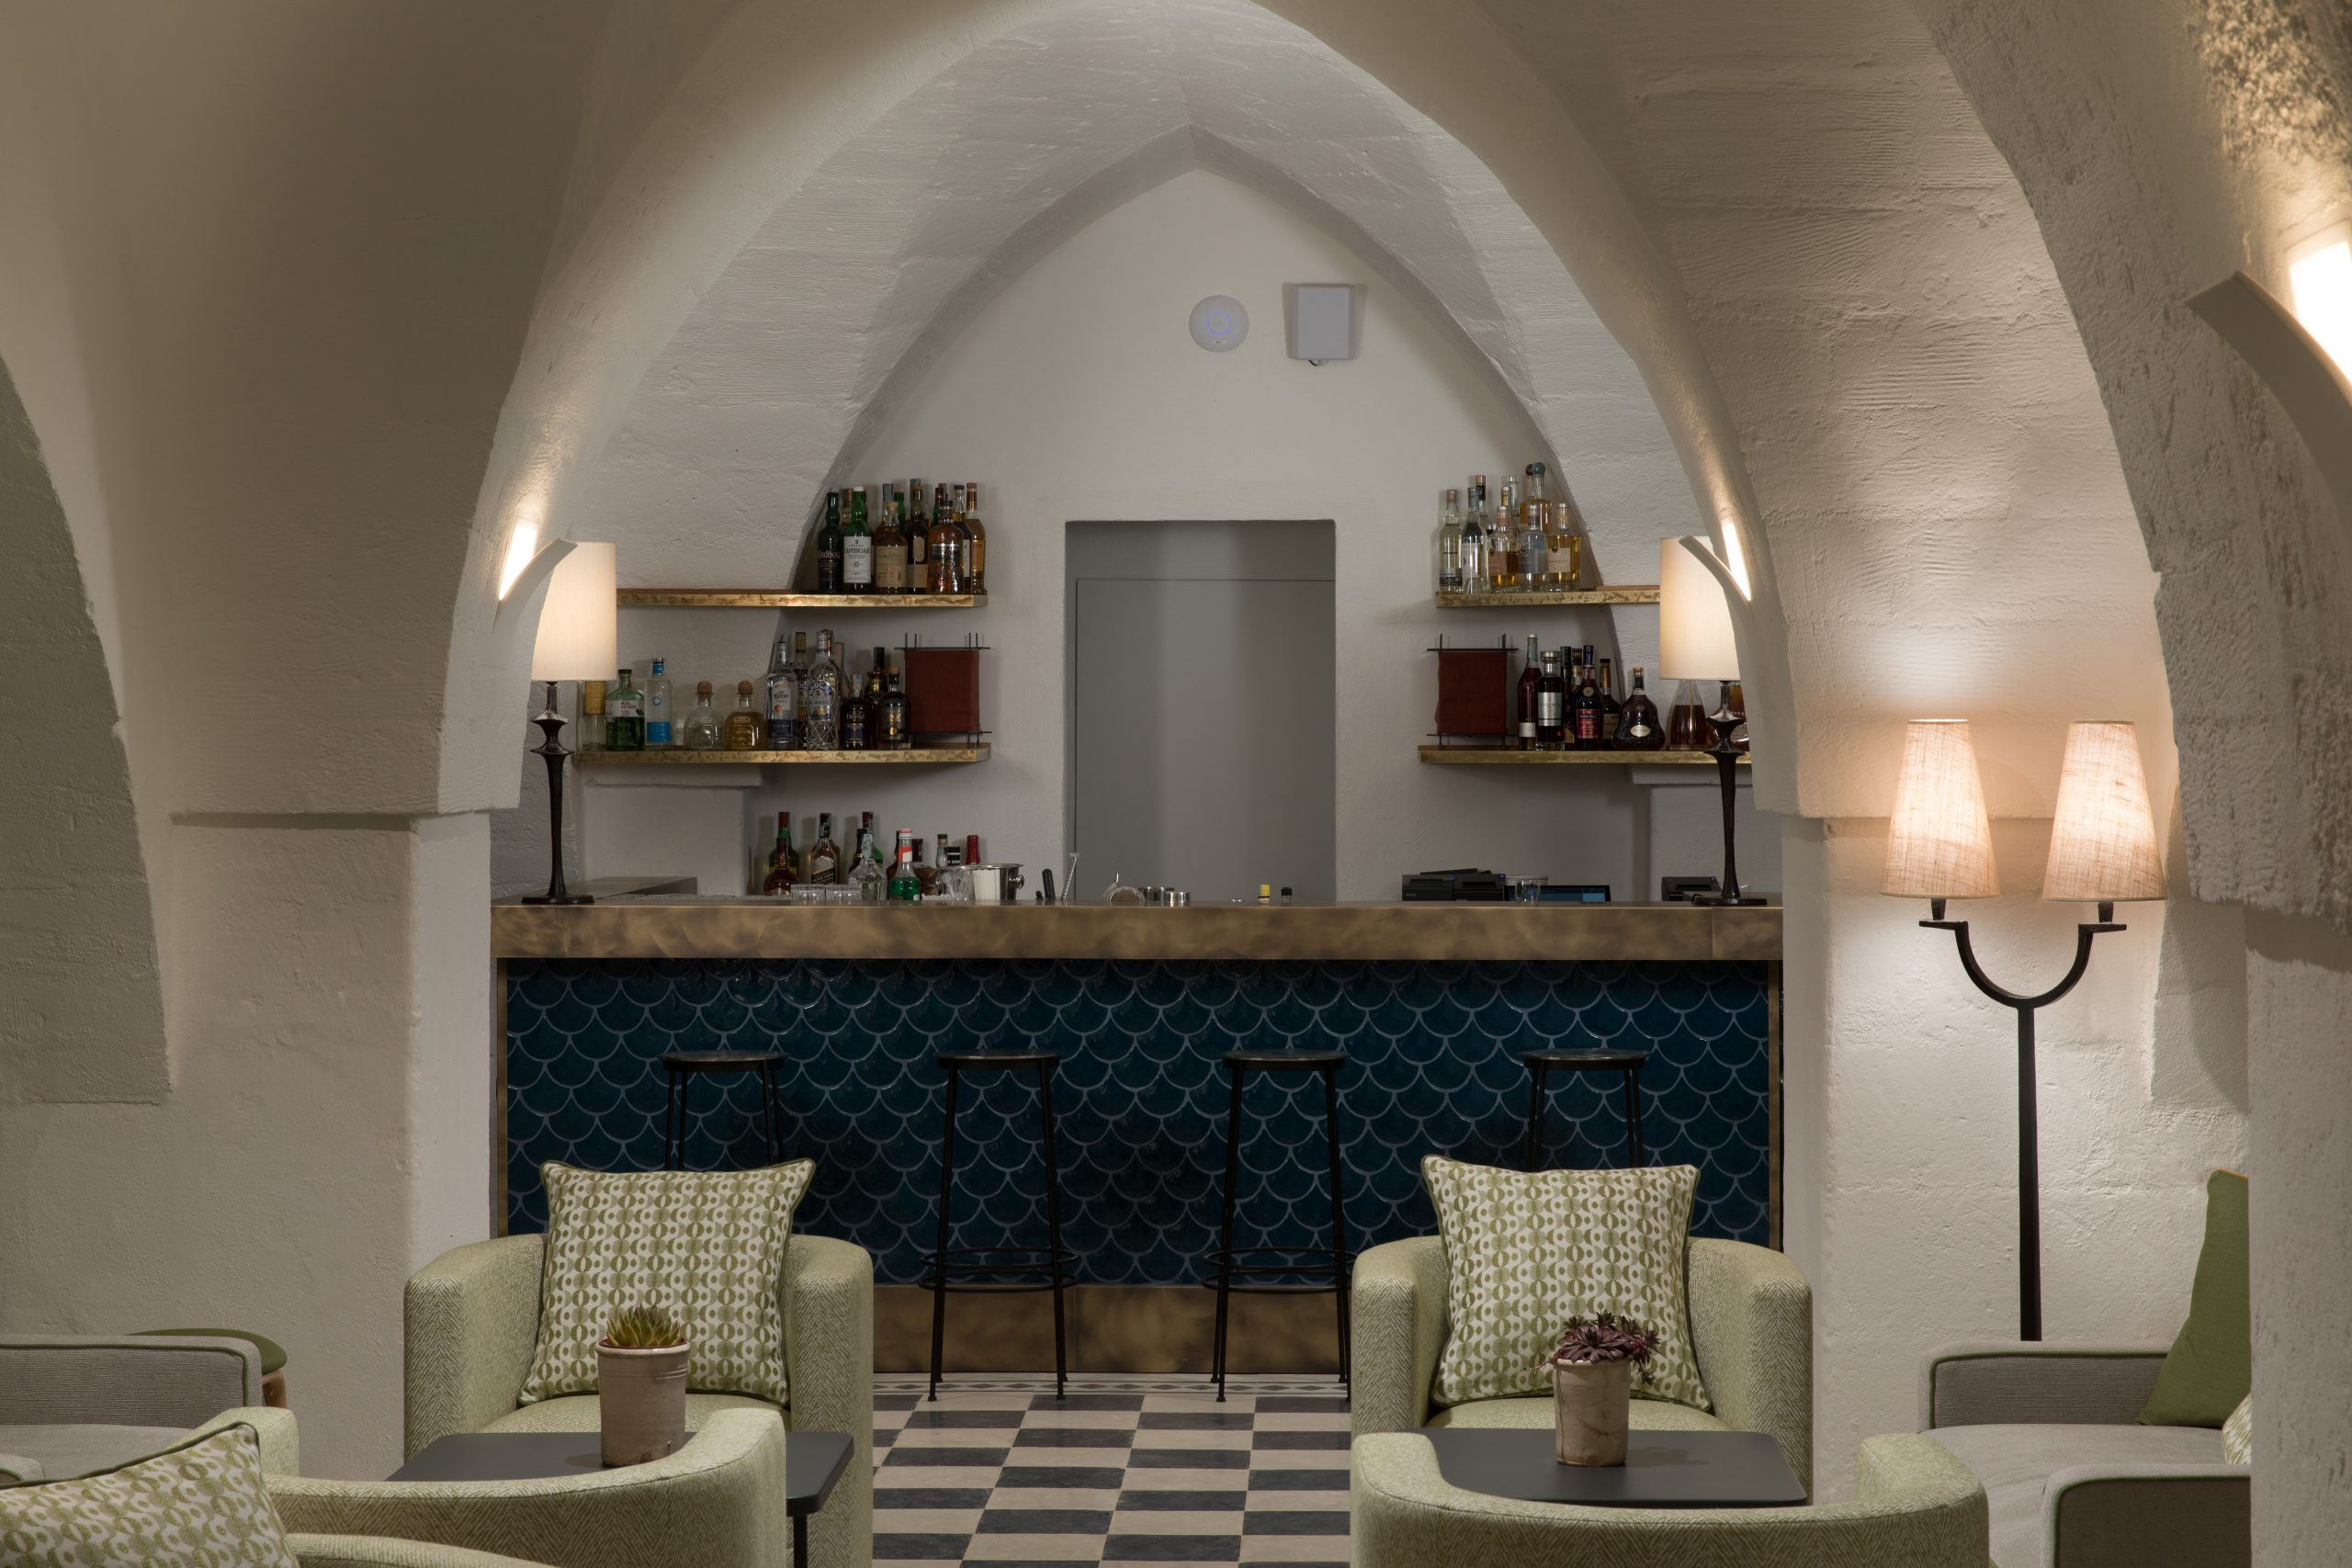 RFH Masseria Torre Maizza - Bar 8548 JG May 19